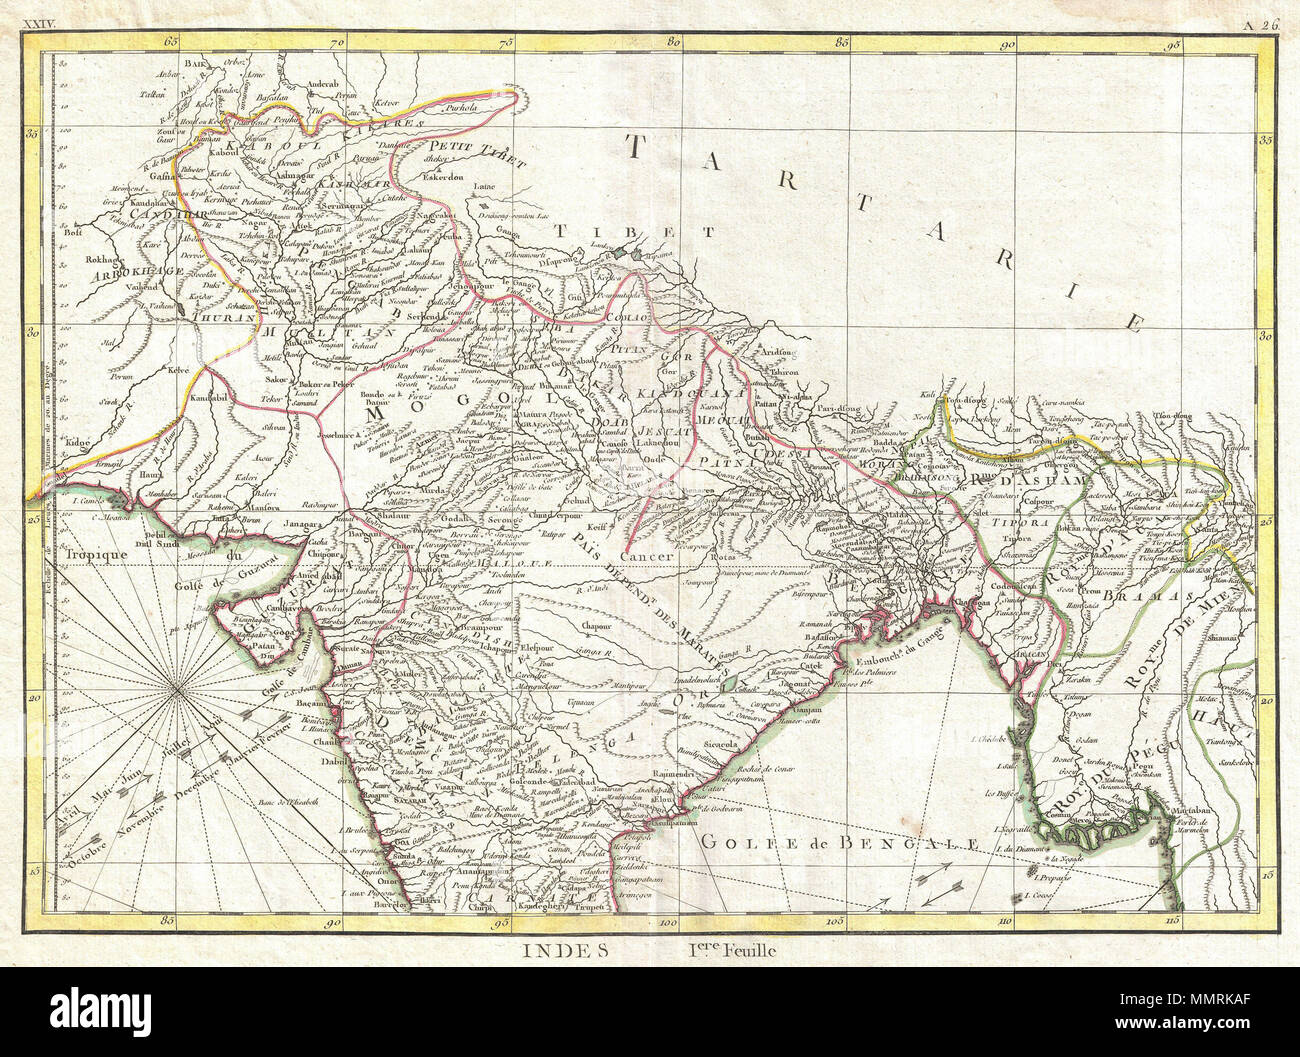 Bonne Map Of Northern India Stockfotos & Bonne Map Of Northern India ...